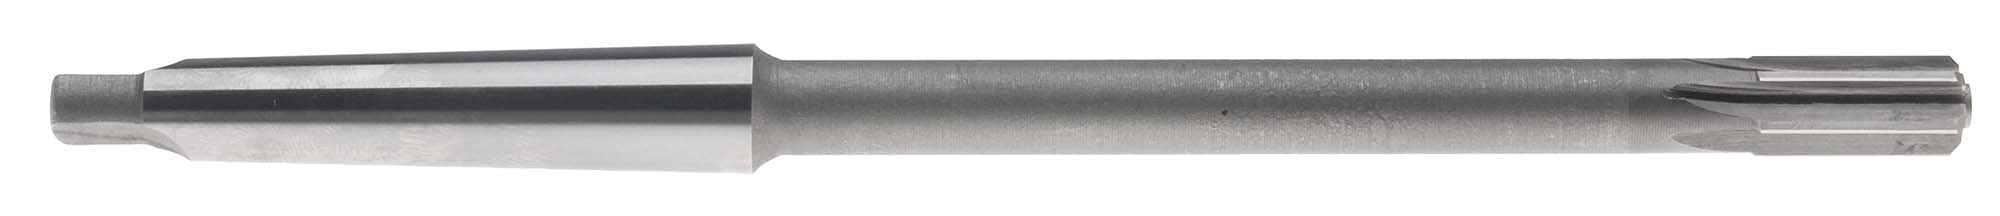 "2"" Expanding Machine Reamer, Taper Shank, High Speed Steel"